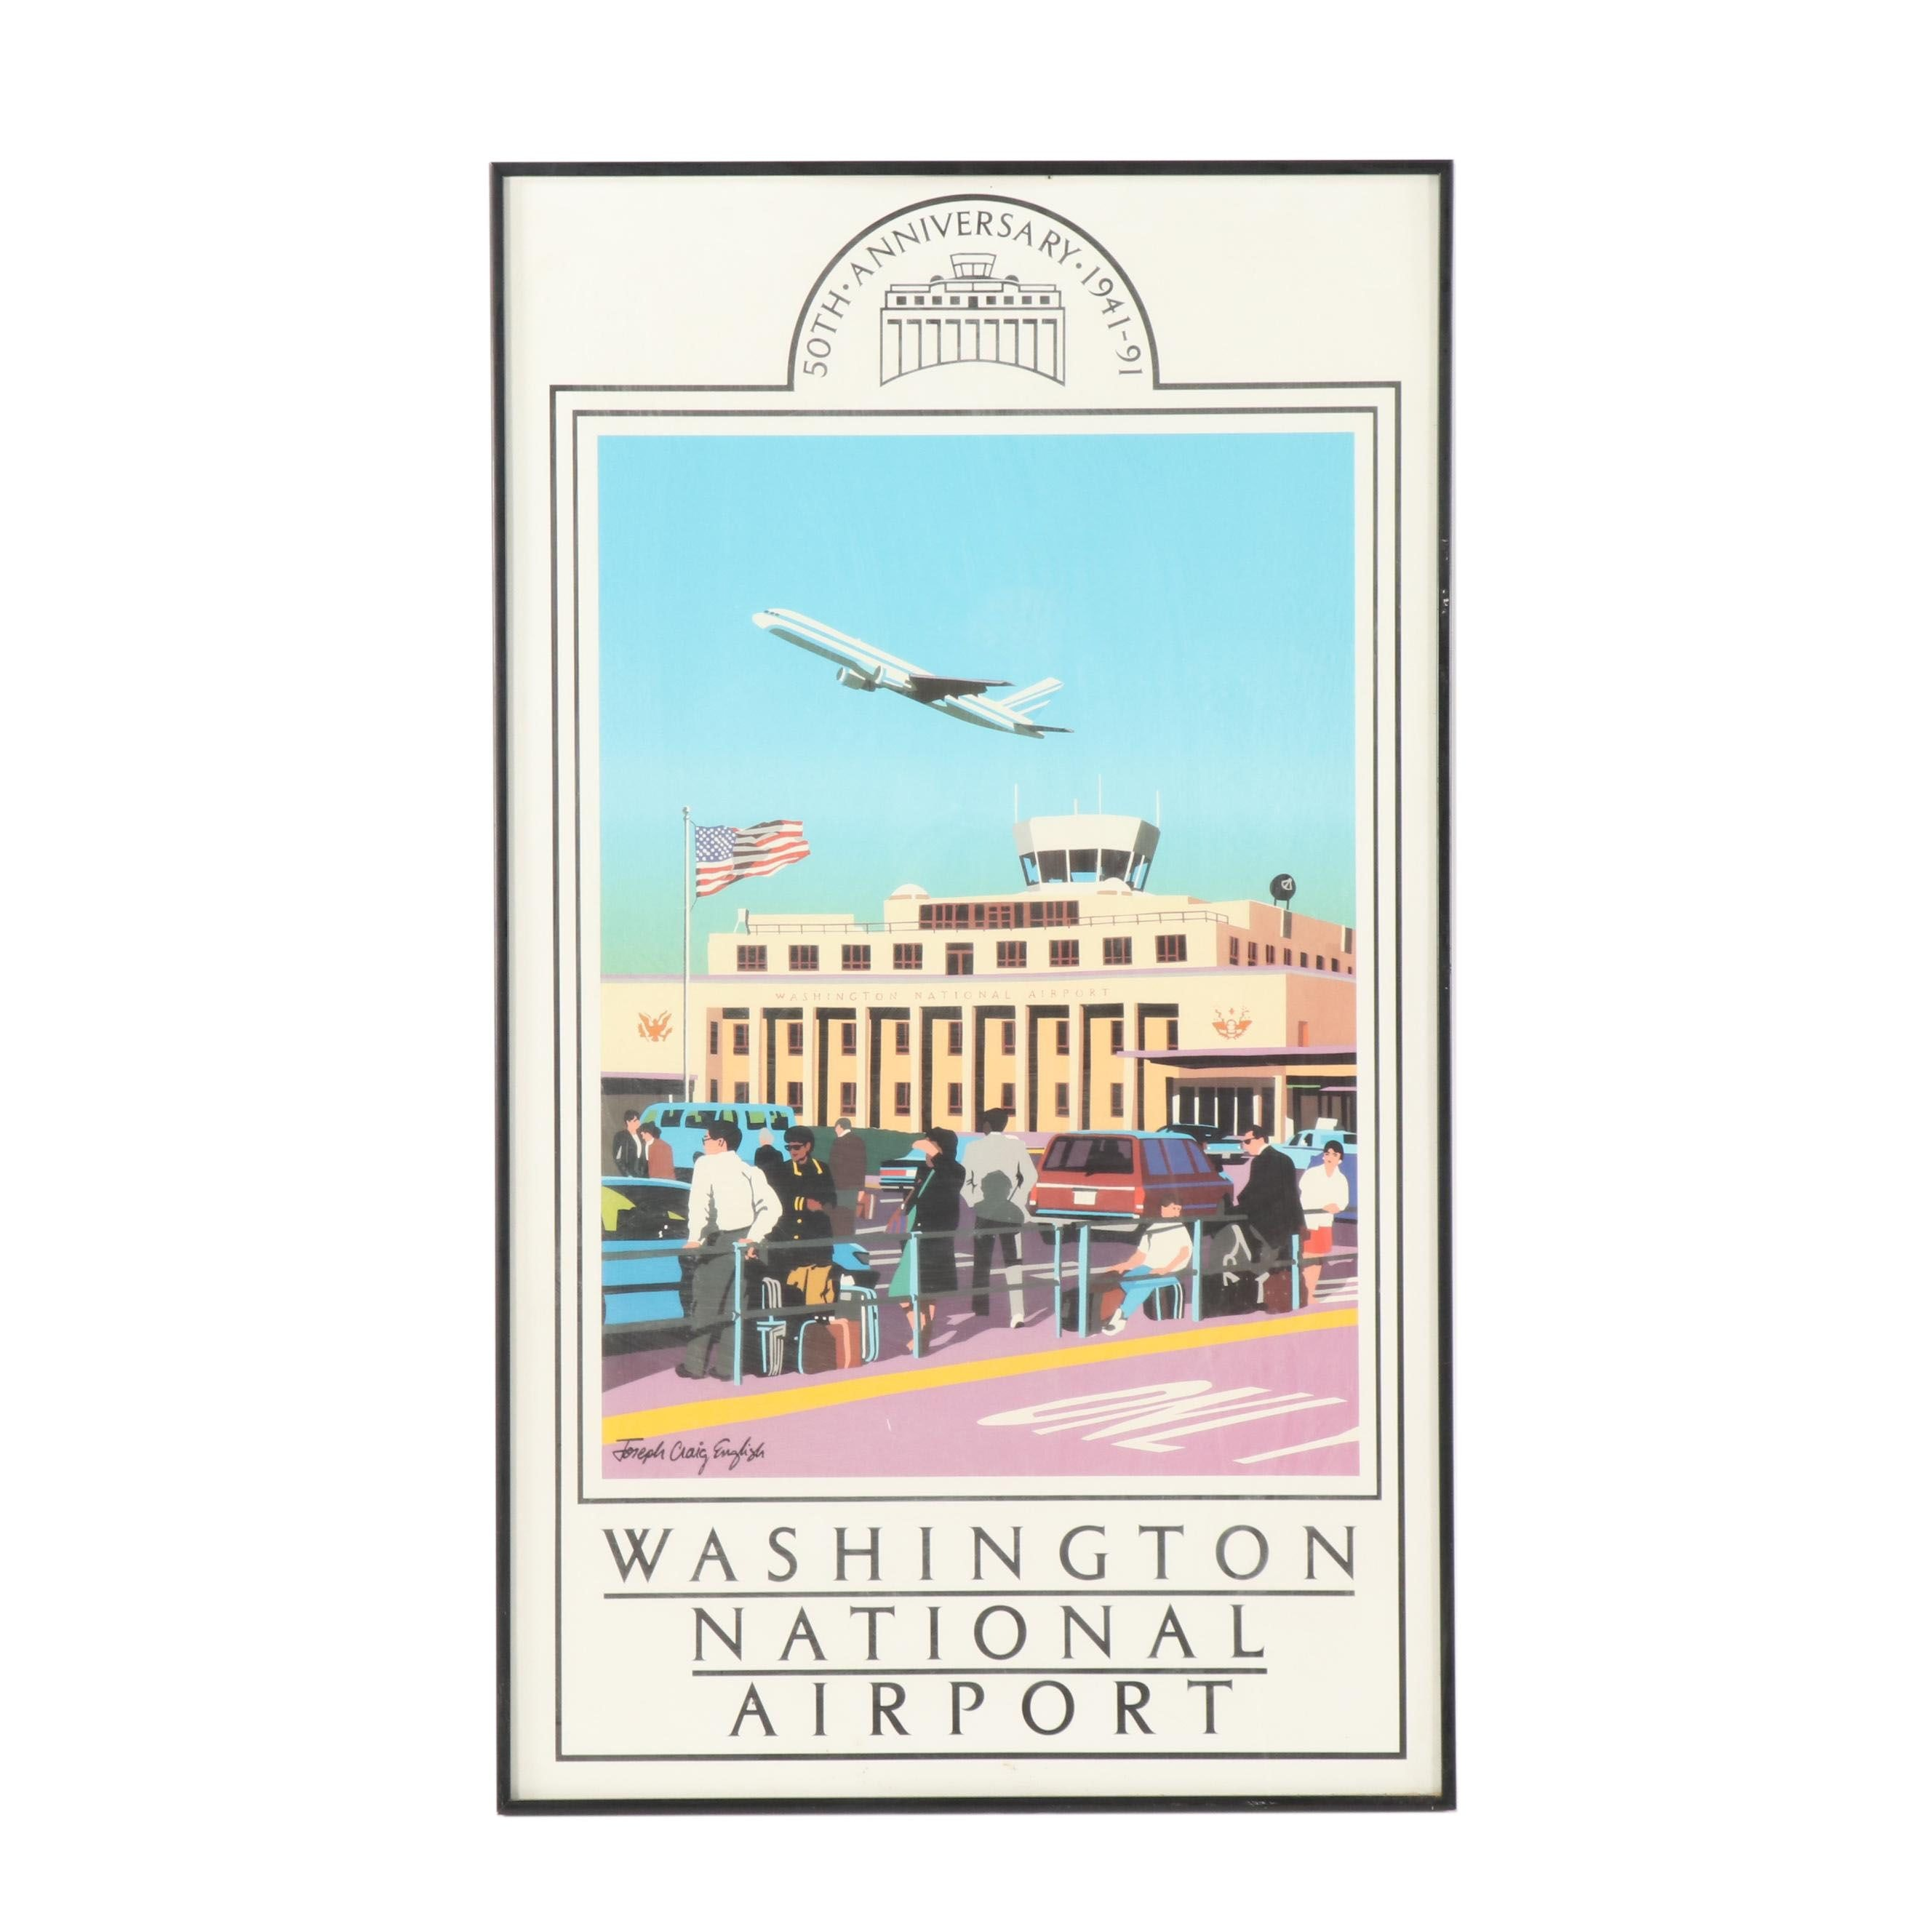 Washington National Airport 50th Anniversary Poster